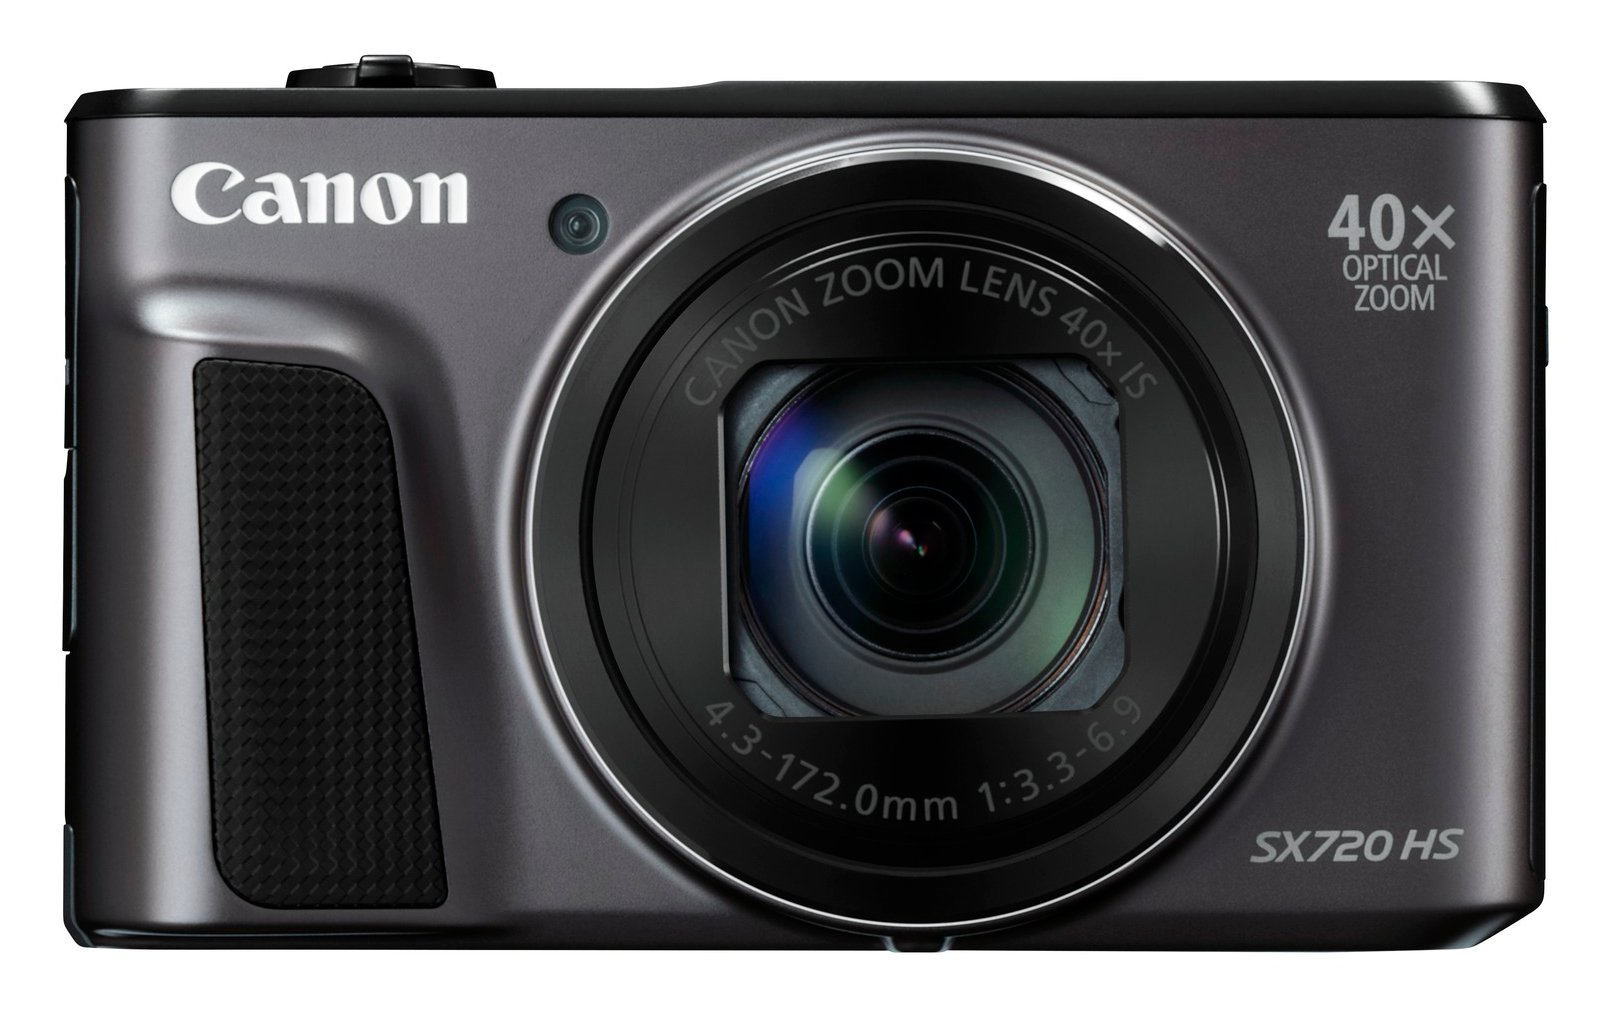 20.3MP Compact Digital Camera with 40x Optical Zoom in Black